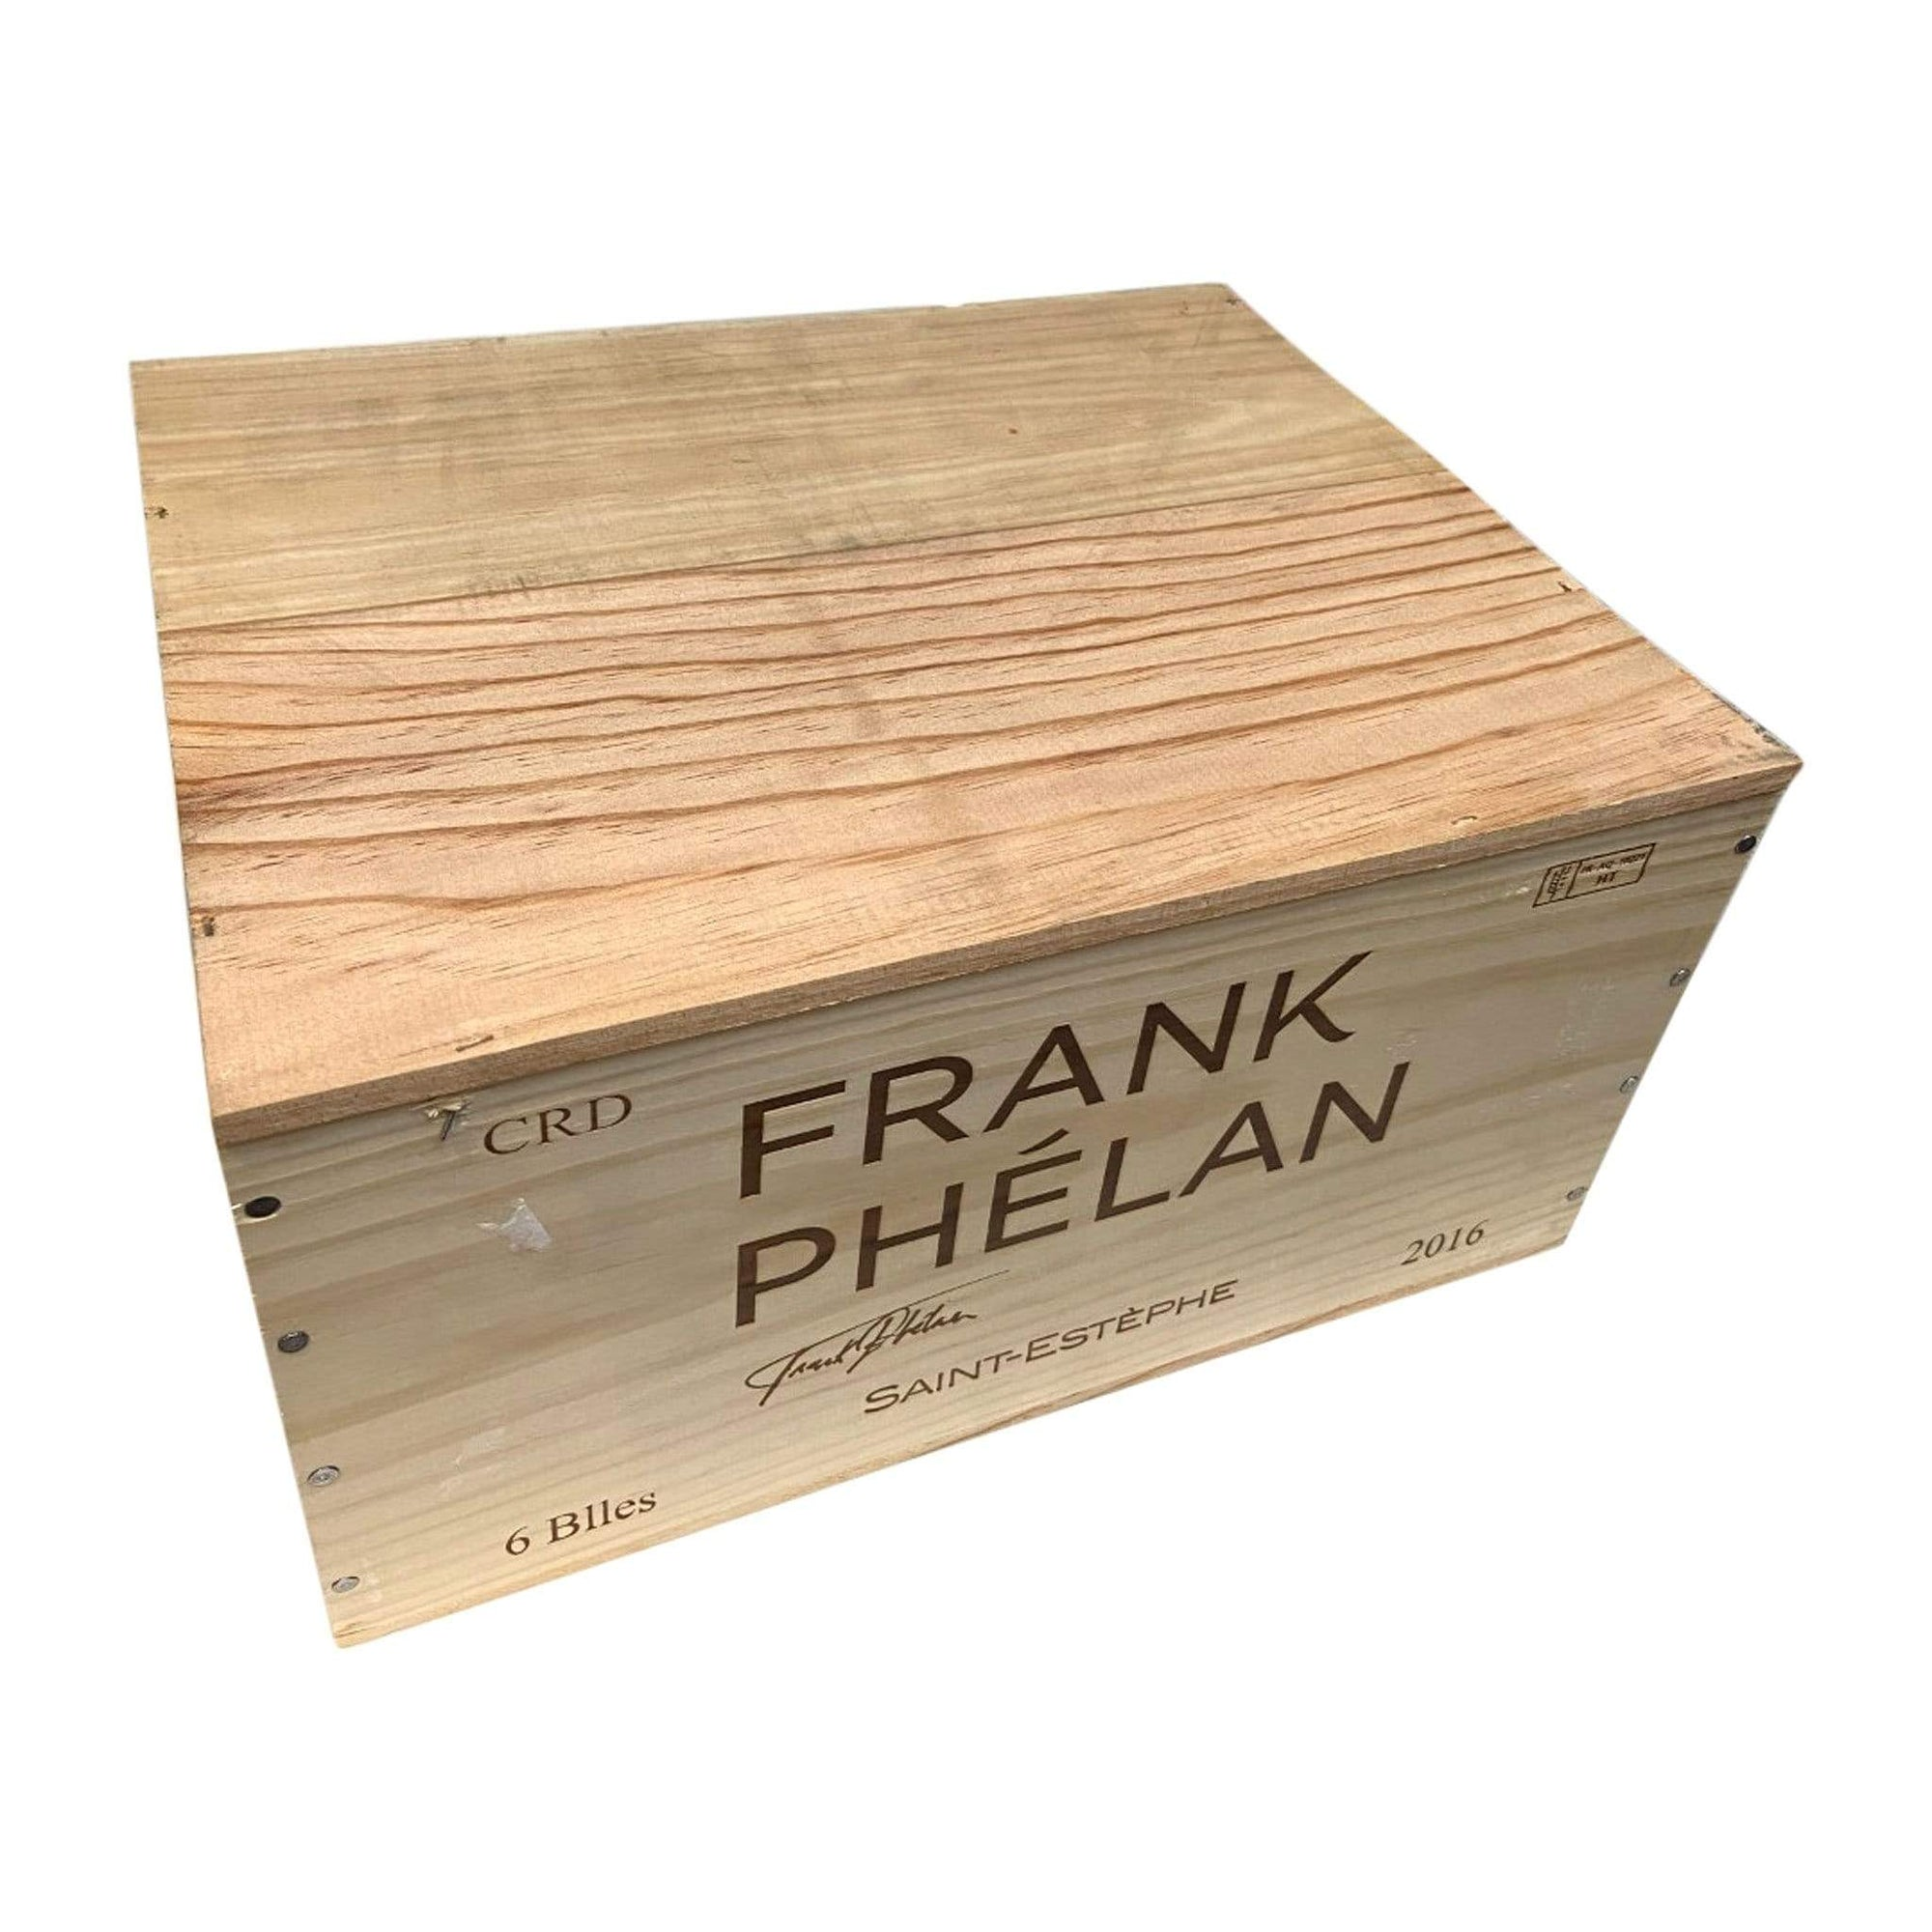 Red Wine Frank Phélan St Estephe 2016 (Original Wooden 6 Bottle Case)